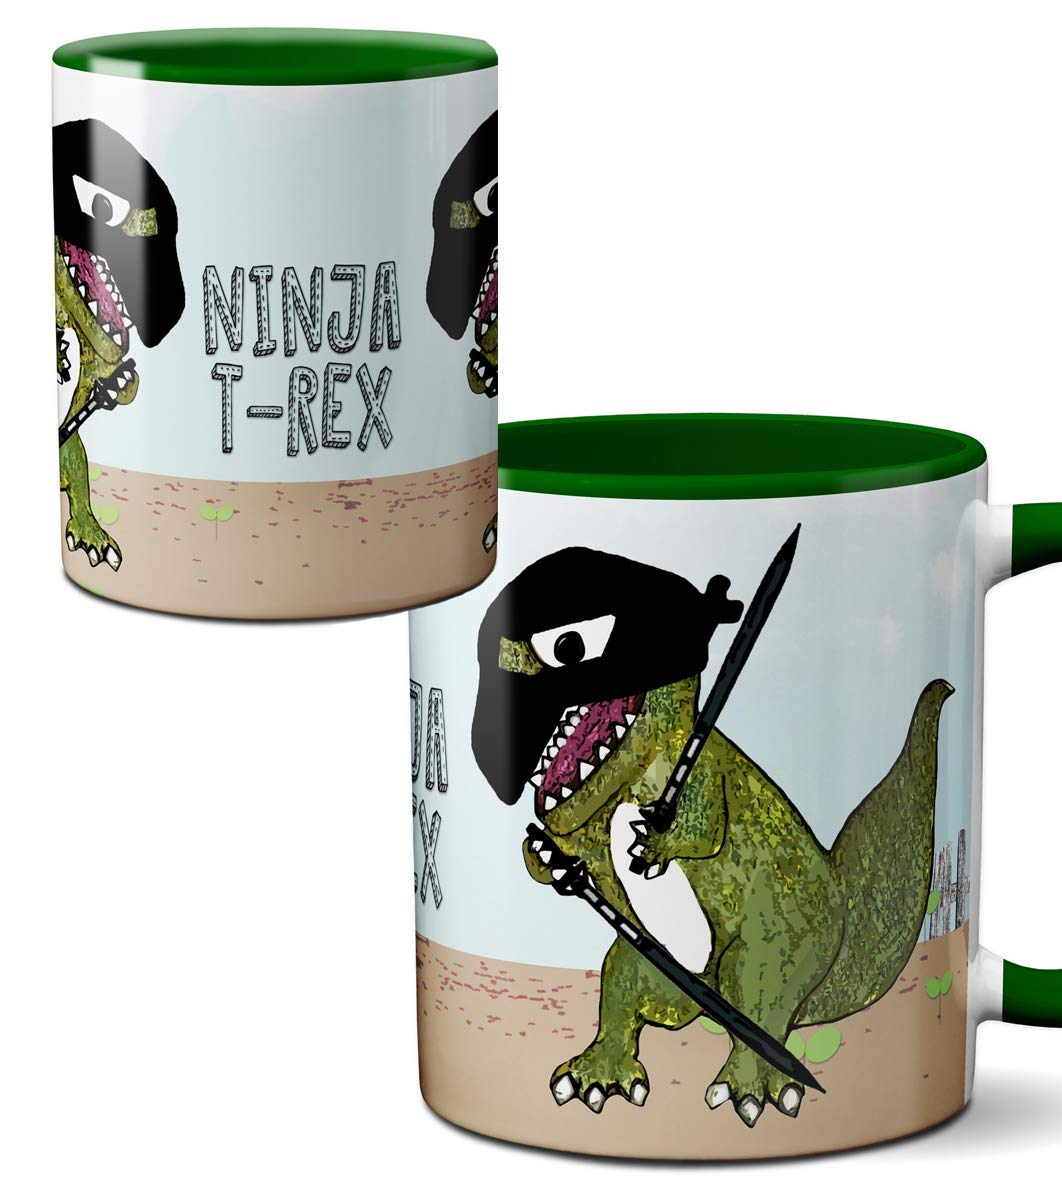 Ninja T-Rex Dinosaur Martial Arts Mug by Pithitude - One Single 11oz. Green Coffee Cup